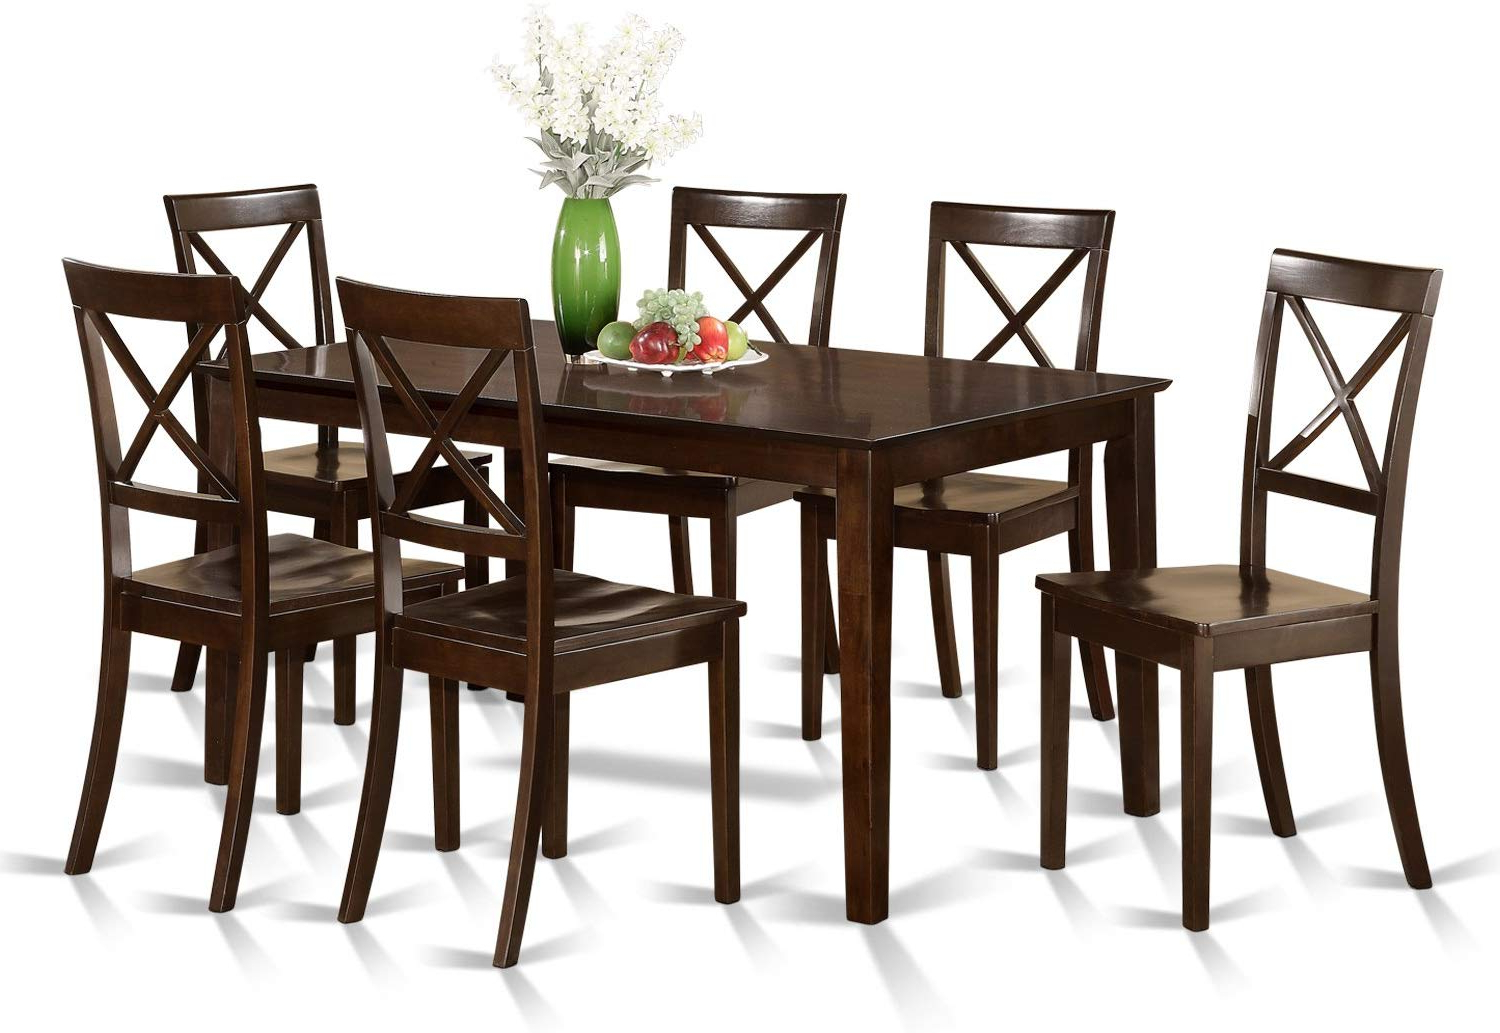 Cab7S Cap W 7 Pc Formal Dining Room Set – Table And 6 Formal Dining Chairs Regarding Most Recent Cappuccino Finish Wood Classic Casual Dining Tables (View 1 of 25)